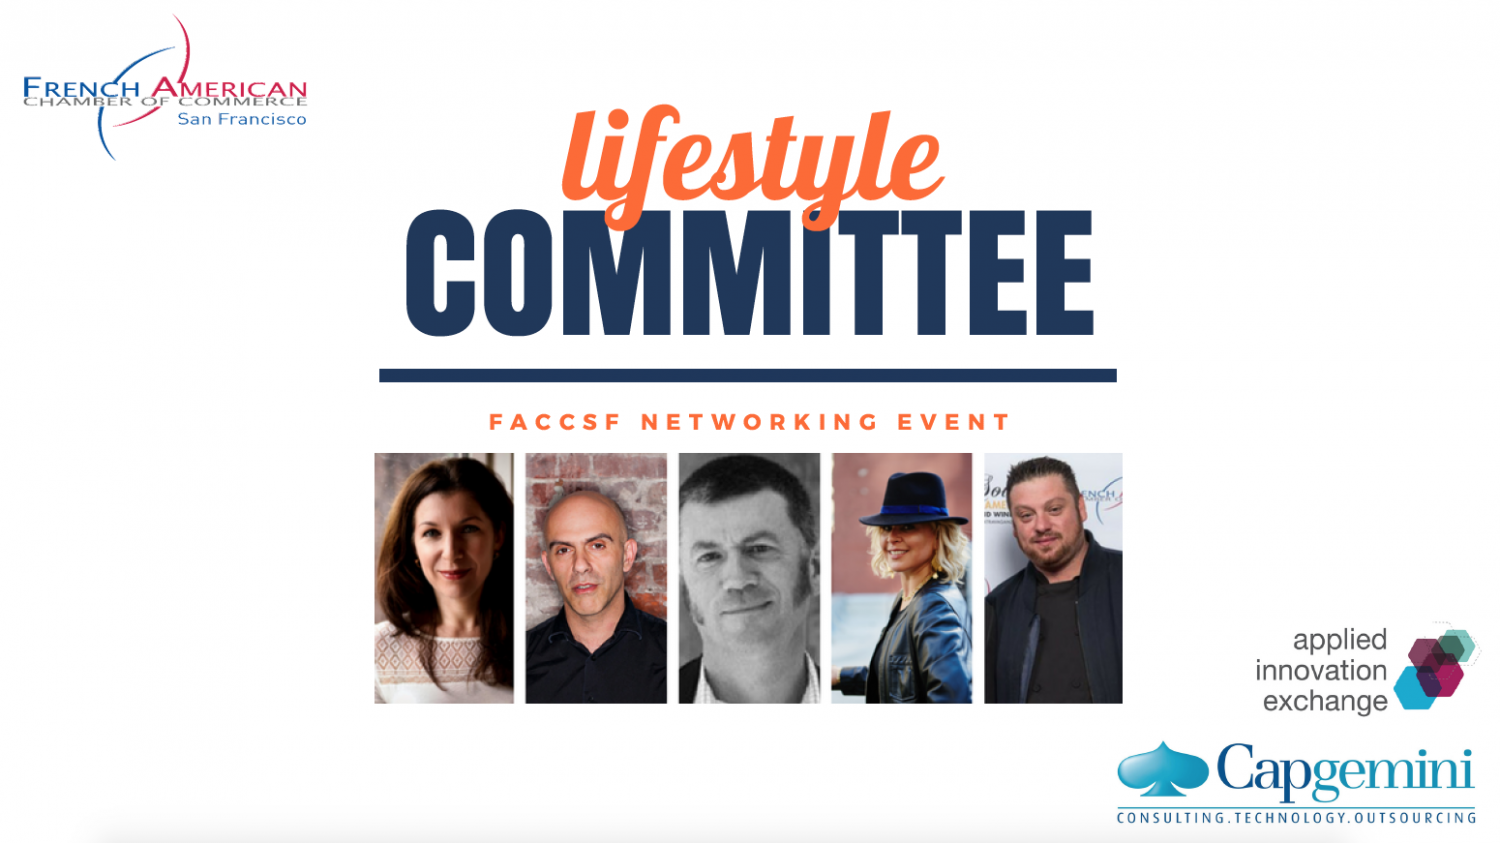 FACCSF - Lifestyle Committee